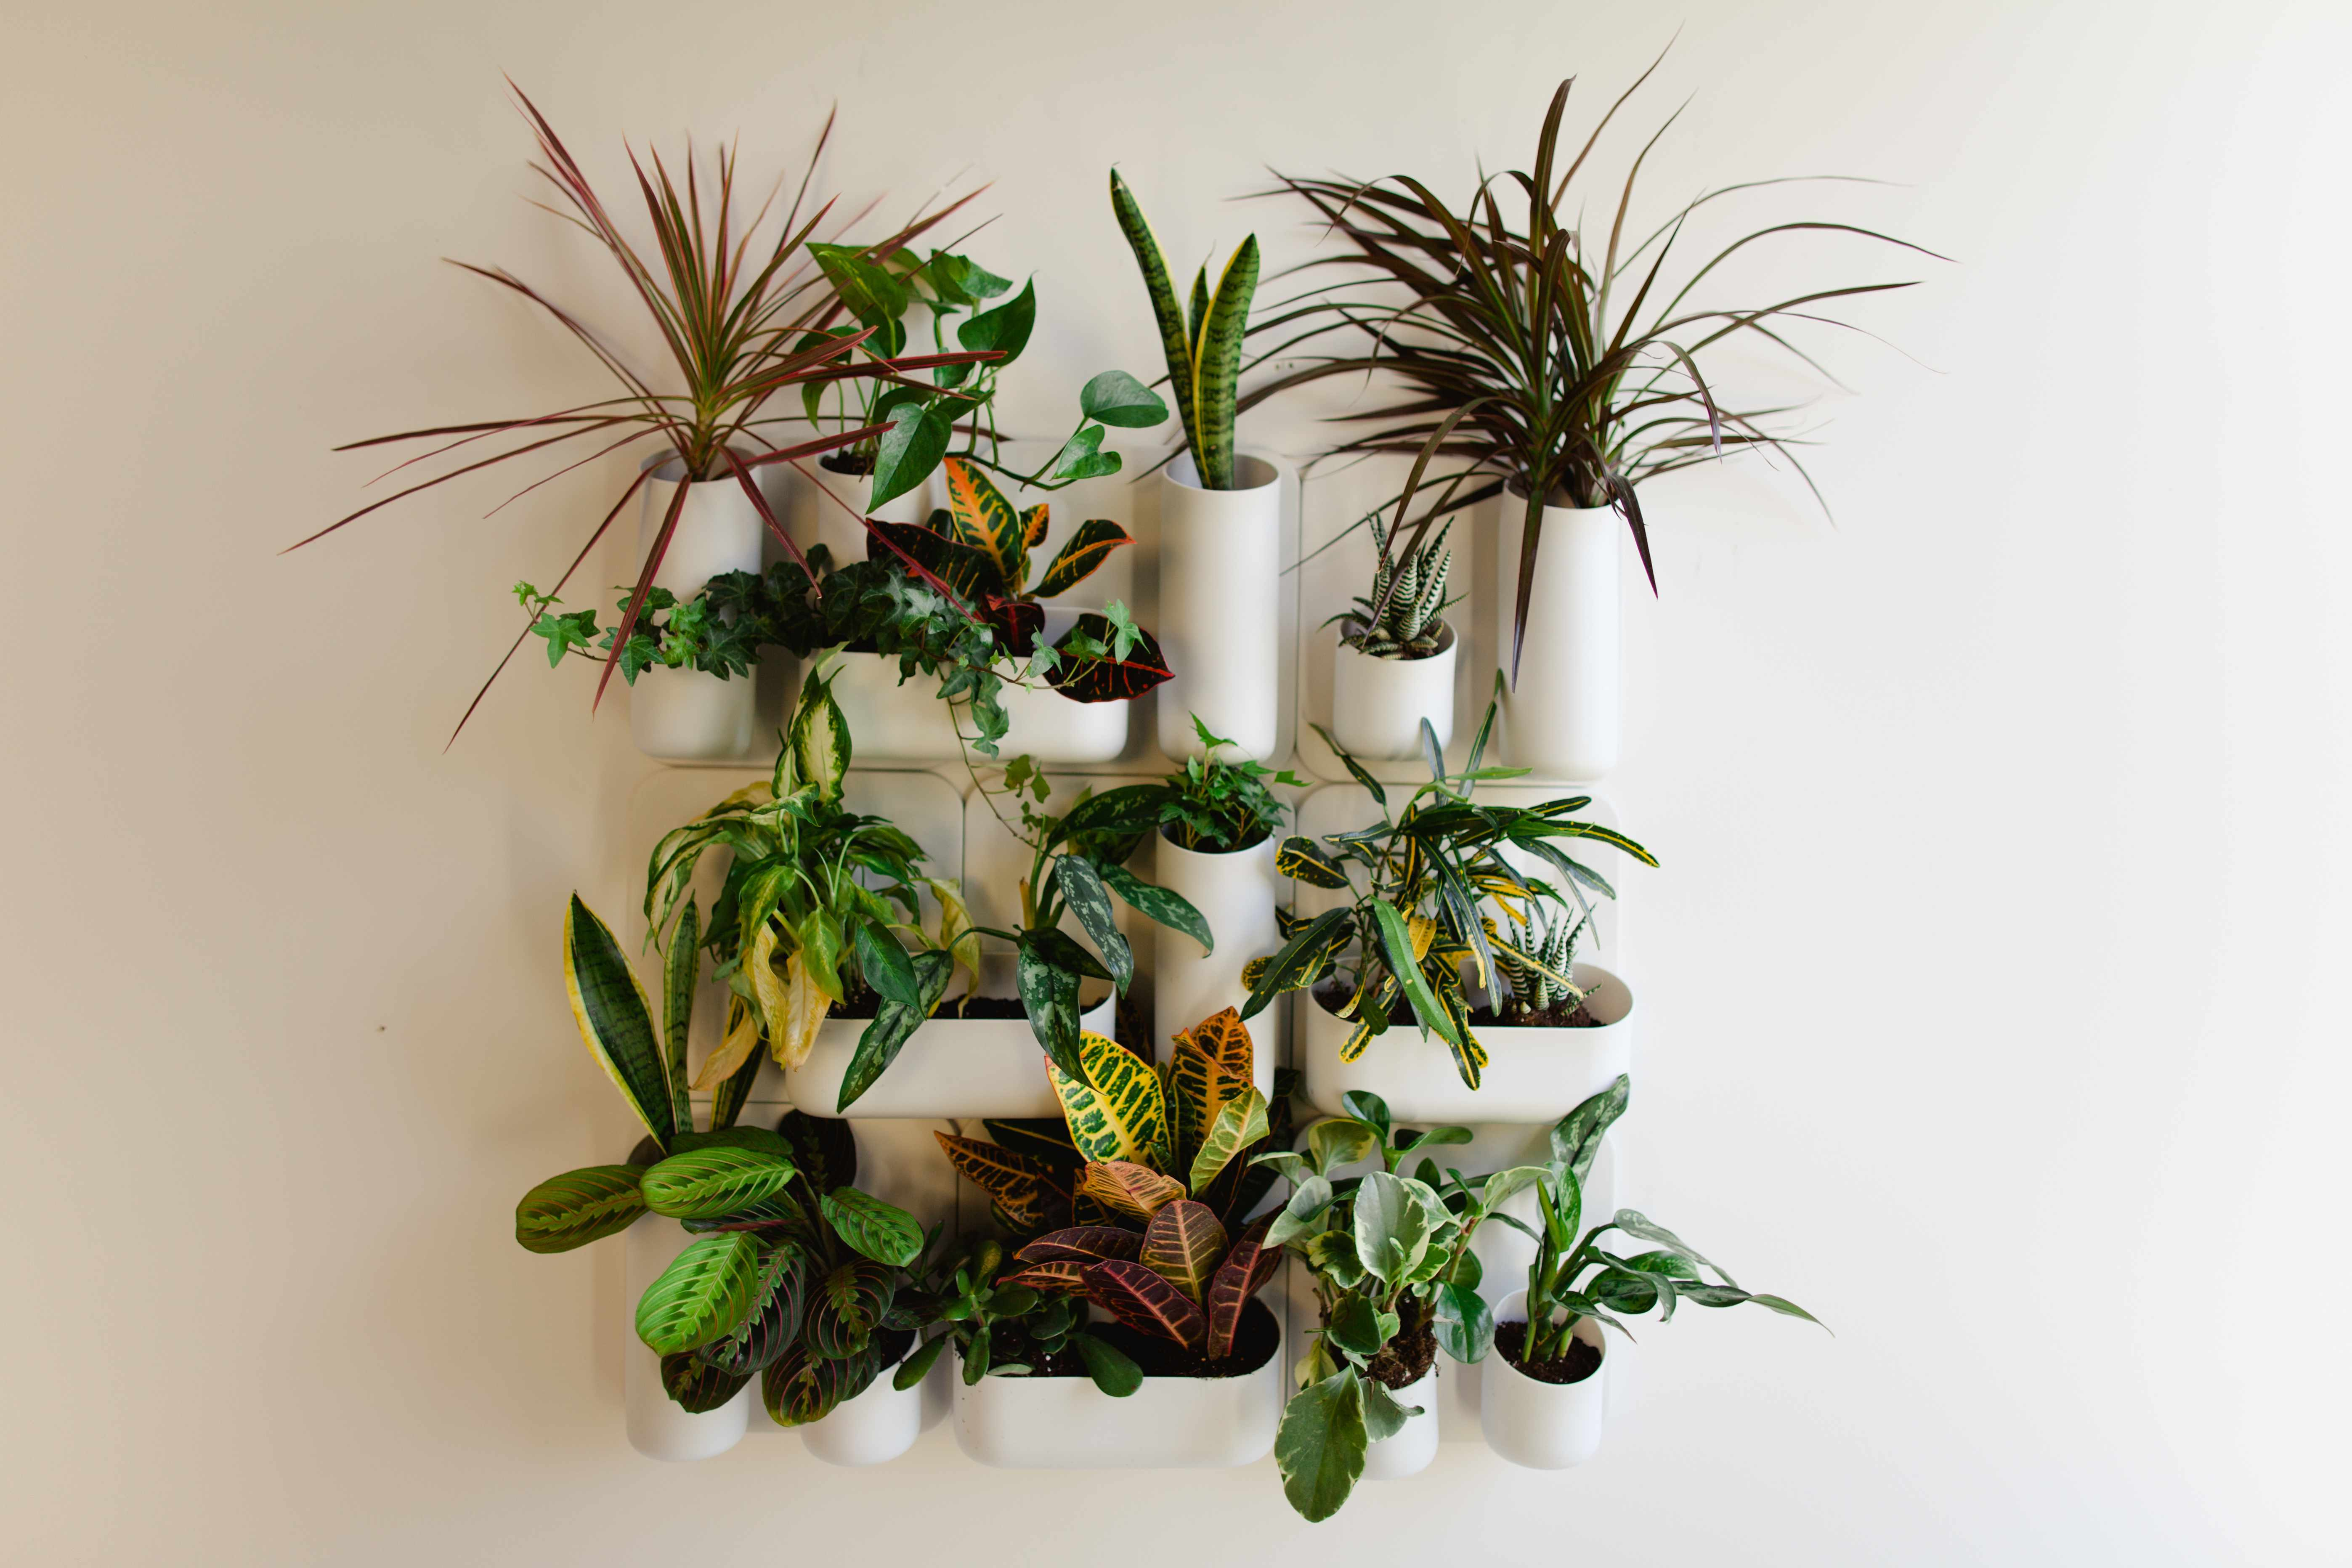 A Vertical Indoor Wall Garden BEFORE AFTER by Judith Mackin